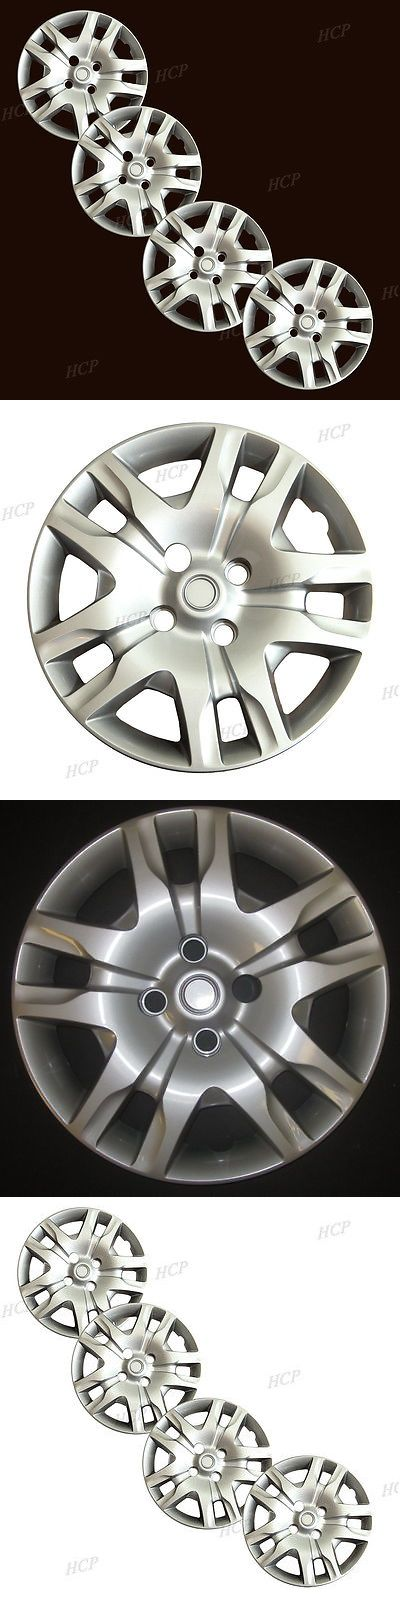 auto parts - general: New 16 Silver Hubcaps Wheel Rim Covers Fits 2007-2012 Nissan Sentra Set Of 4 BUY IT NOW ONLY: $41.31